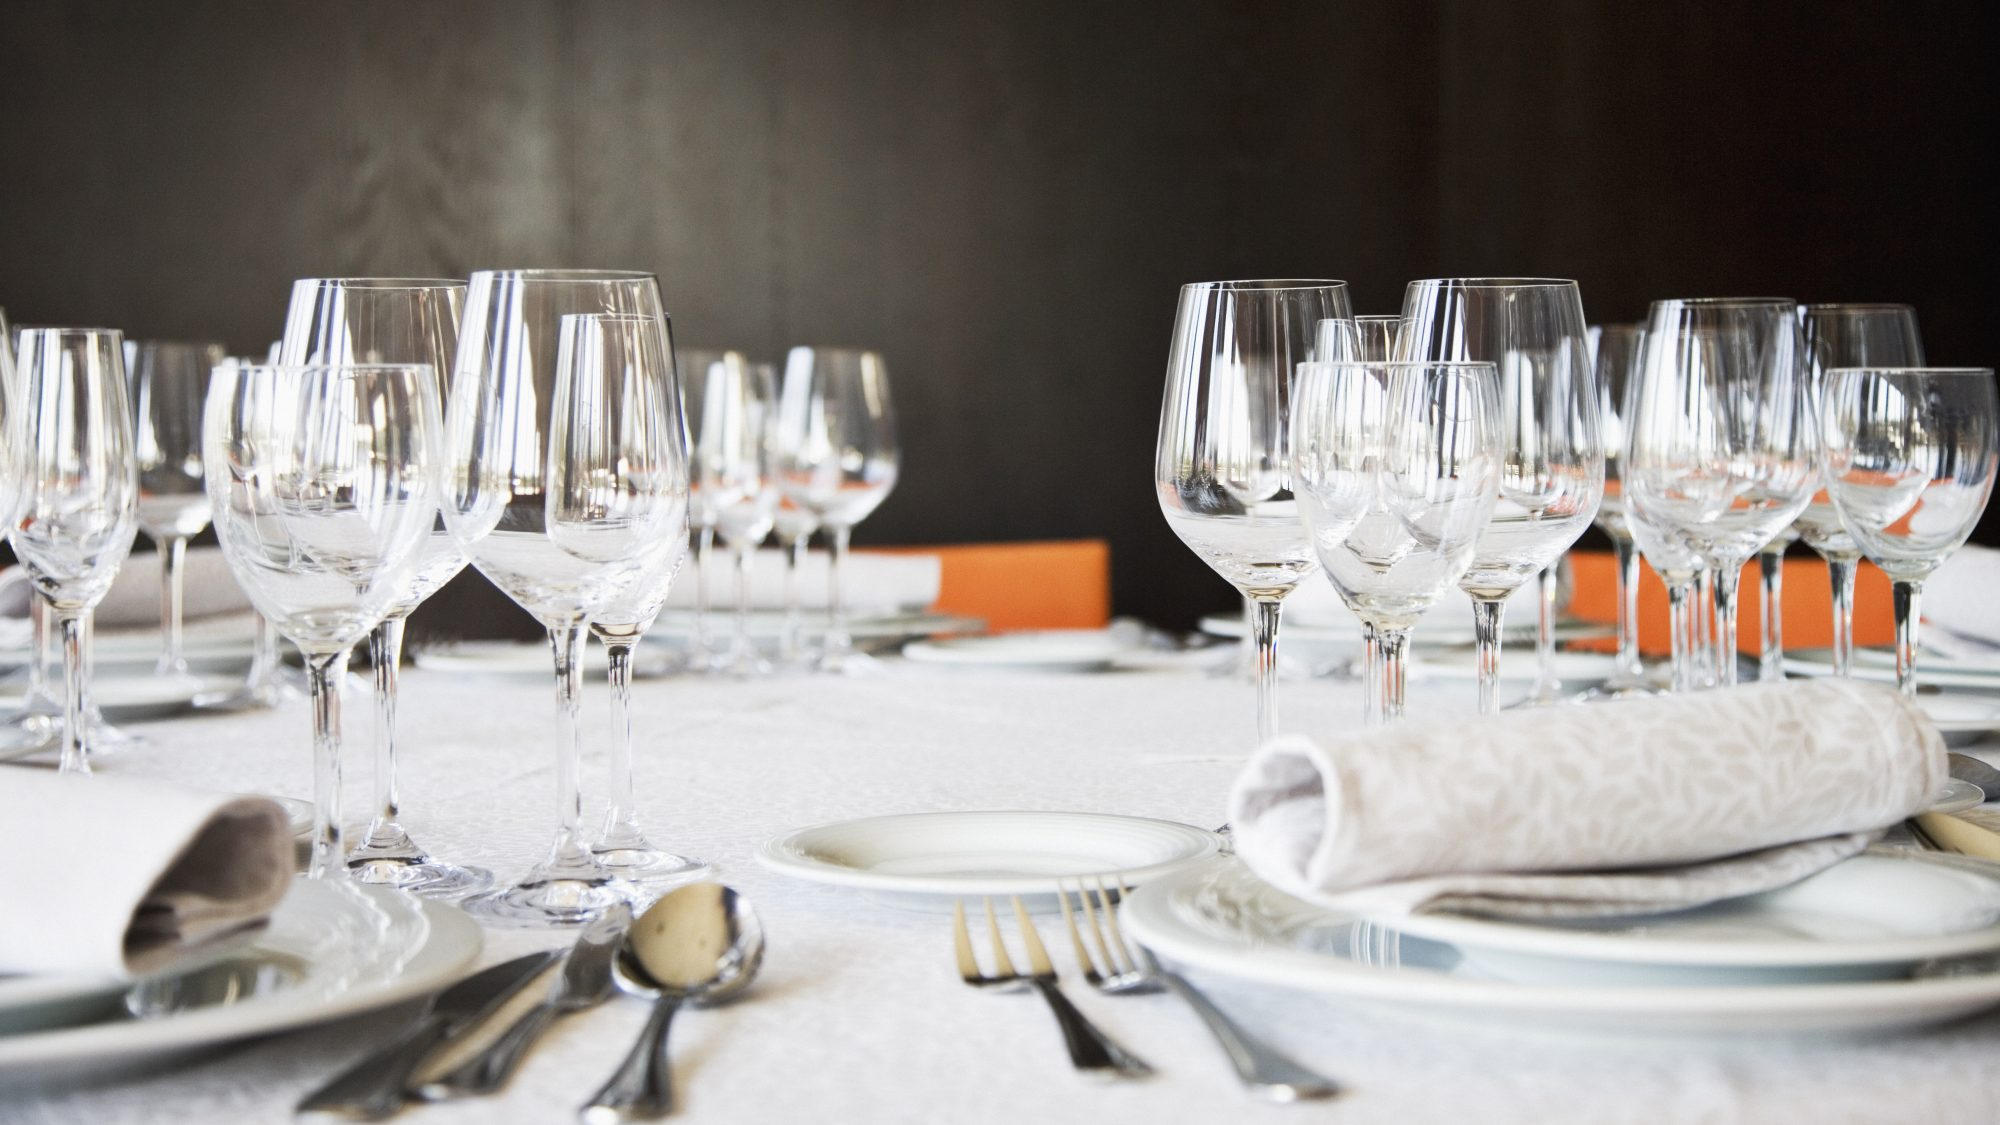 Fancy restaurant table setting - 6 Fancy Restaurant Rules You Can Forget About